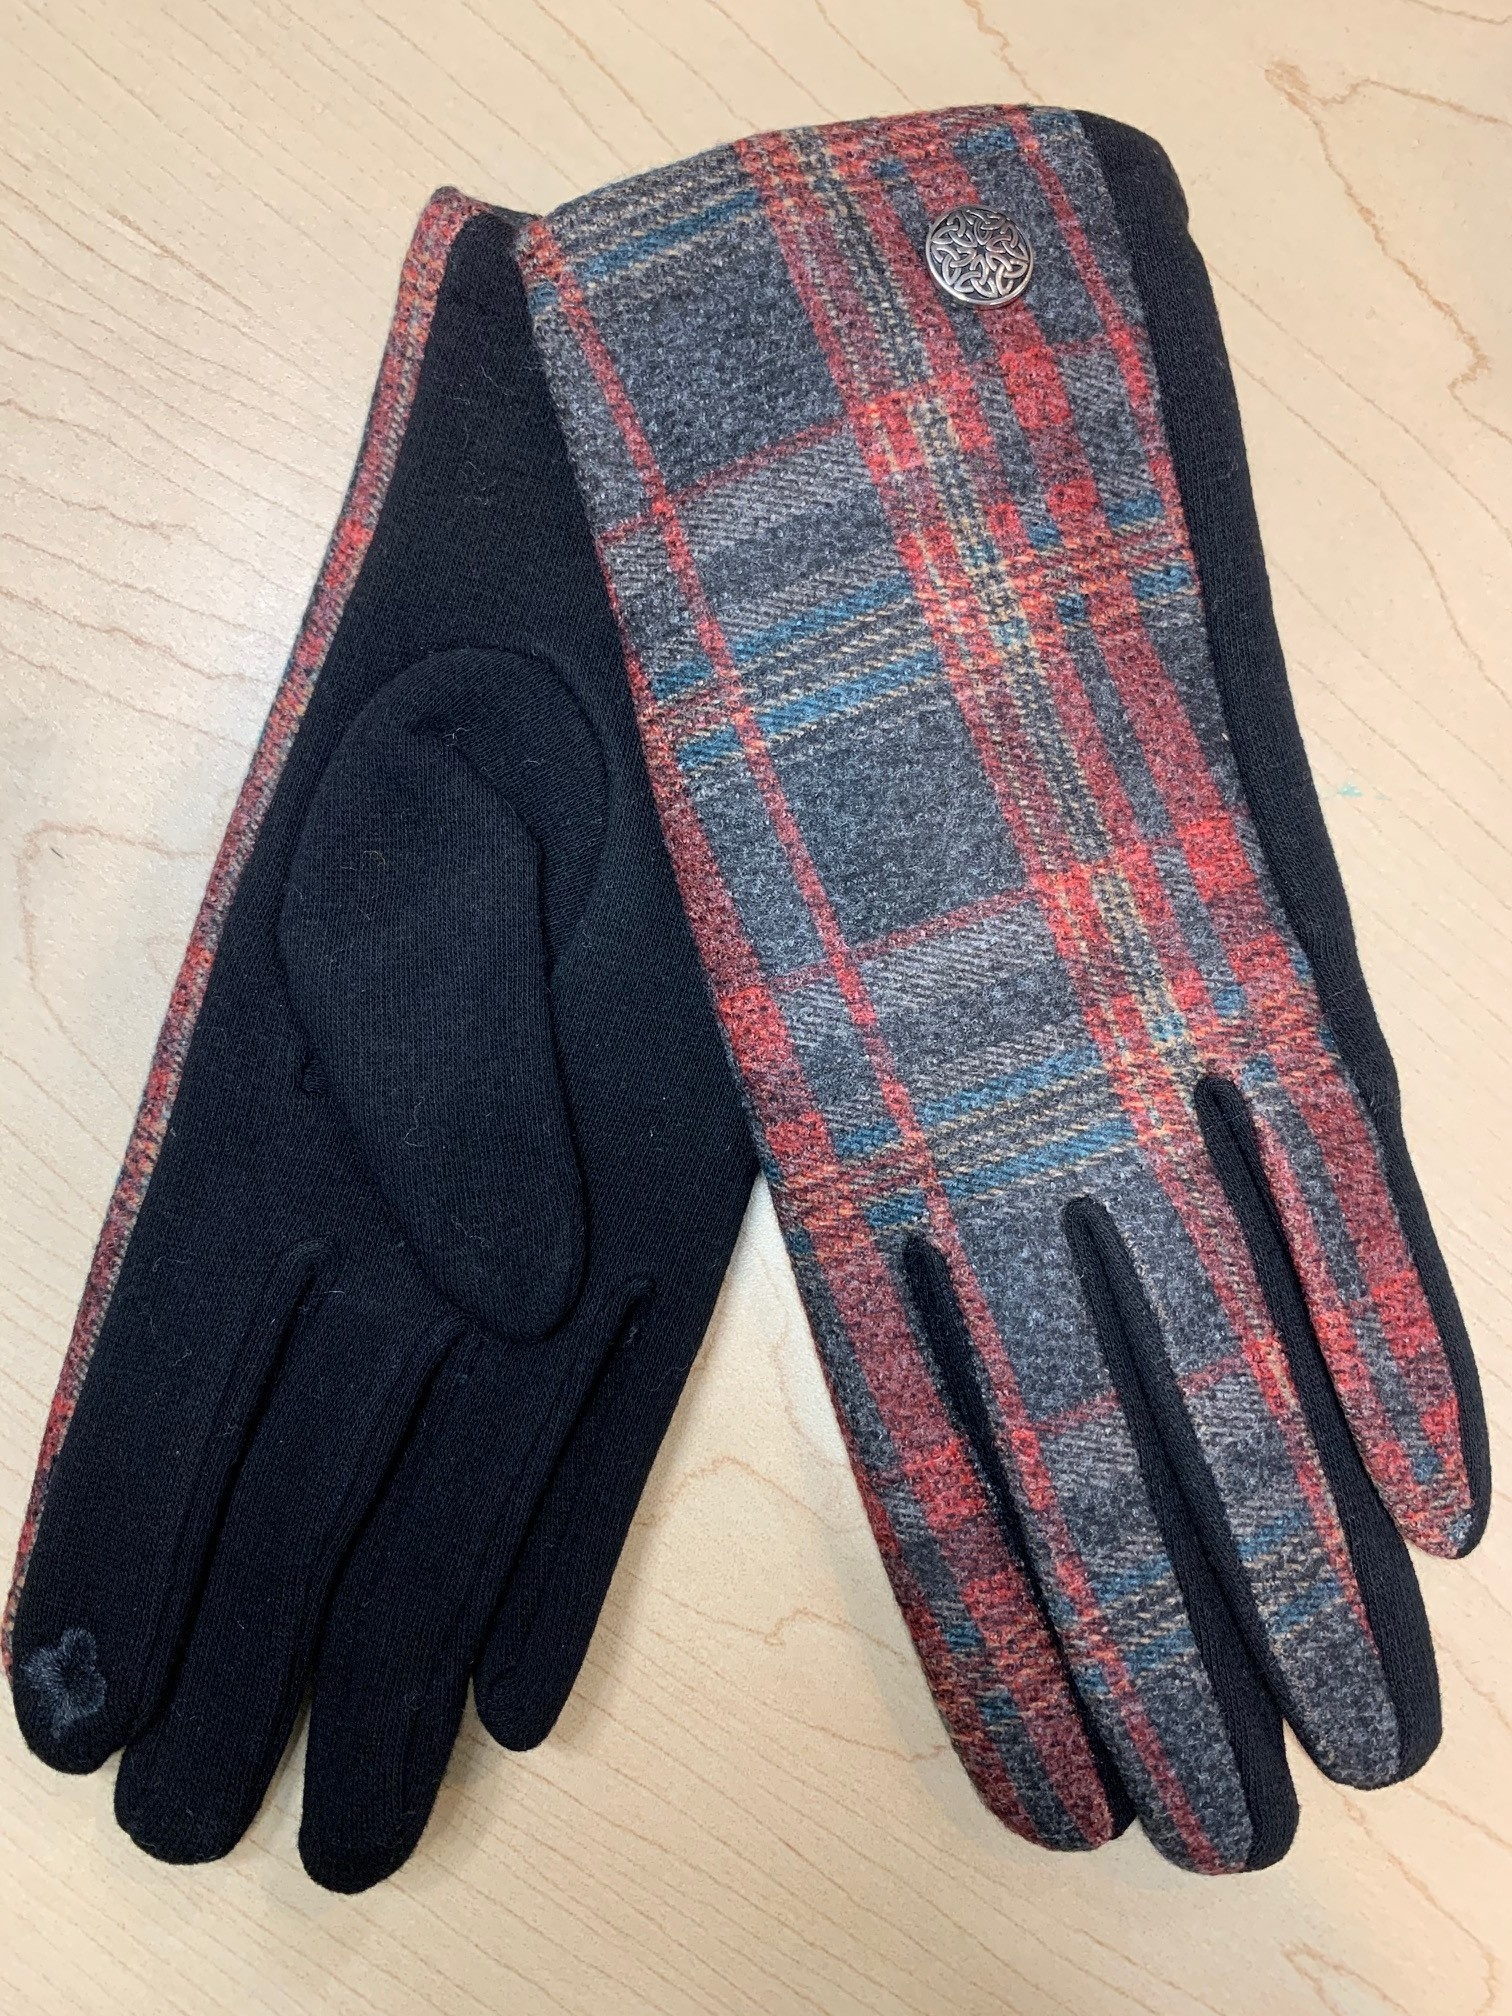 Gloves: Blk/Red/Grey